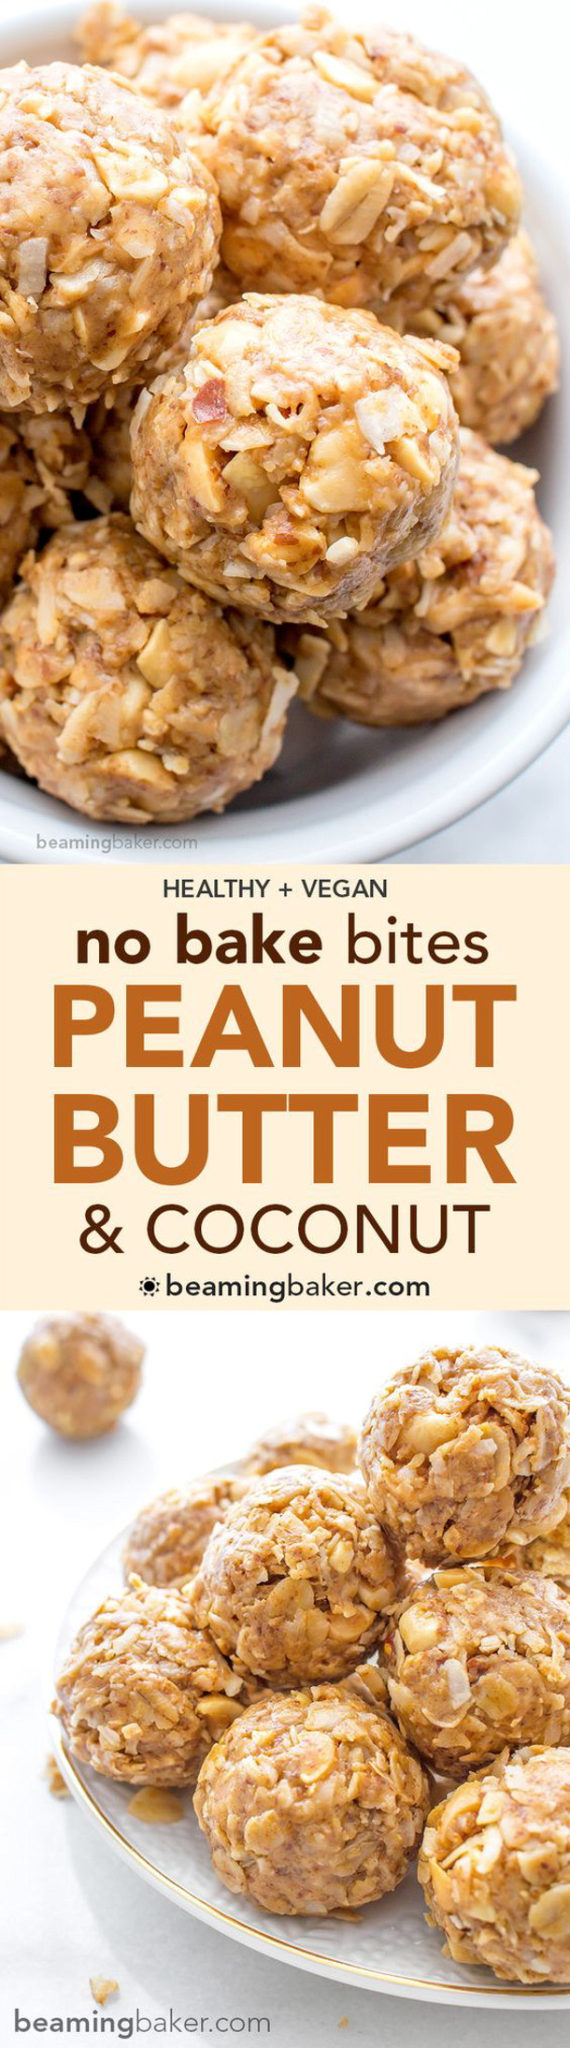 Healthy Snacks - No Bake Peanut Butter Coconut Bites - Vegan and Gluten Free Recipe via Beaming Baker #healthysnacks #healthytreats #healthyafterschooltreats #healthyrecipes #healthyfood #healthy #healthydesserts